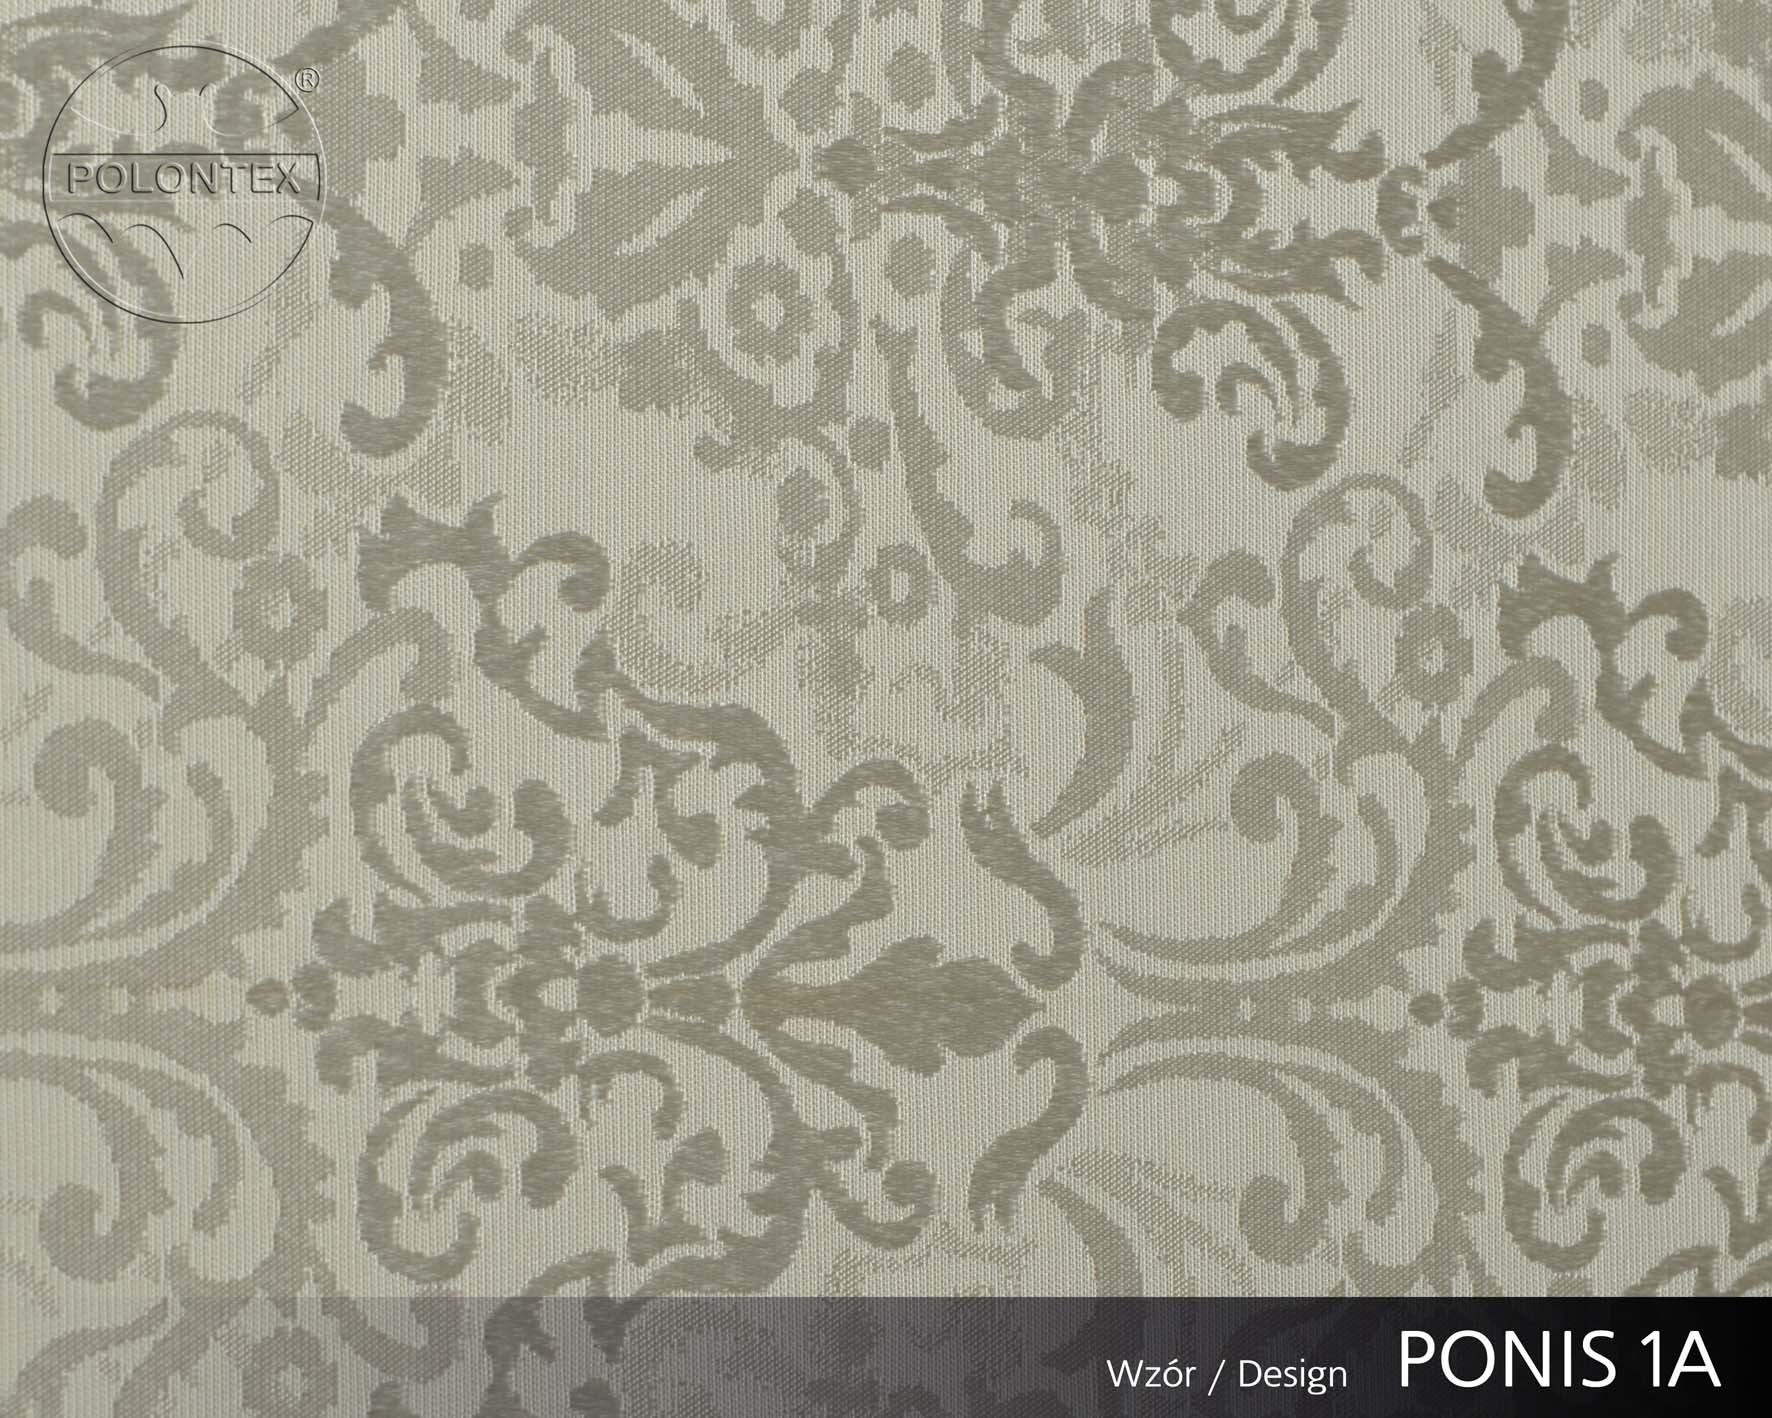 Ponis 1A 1187